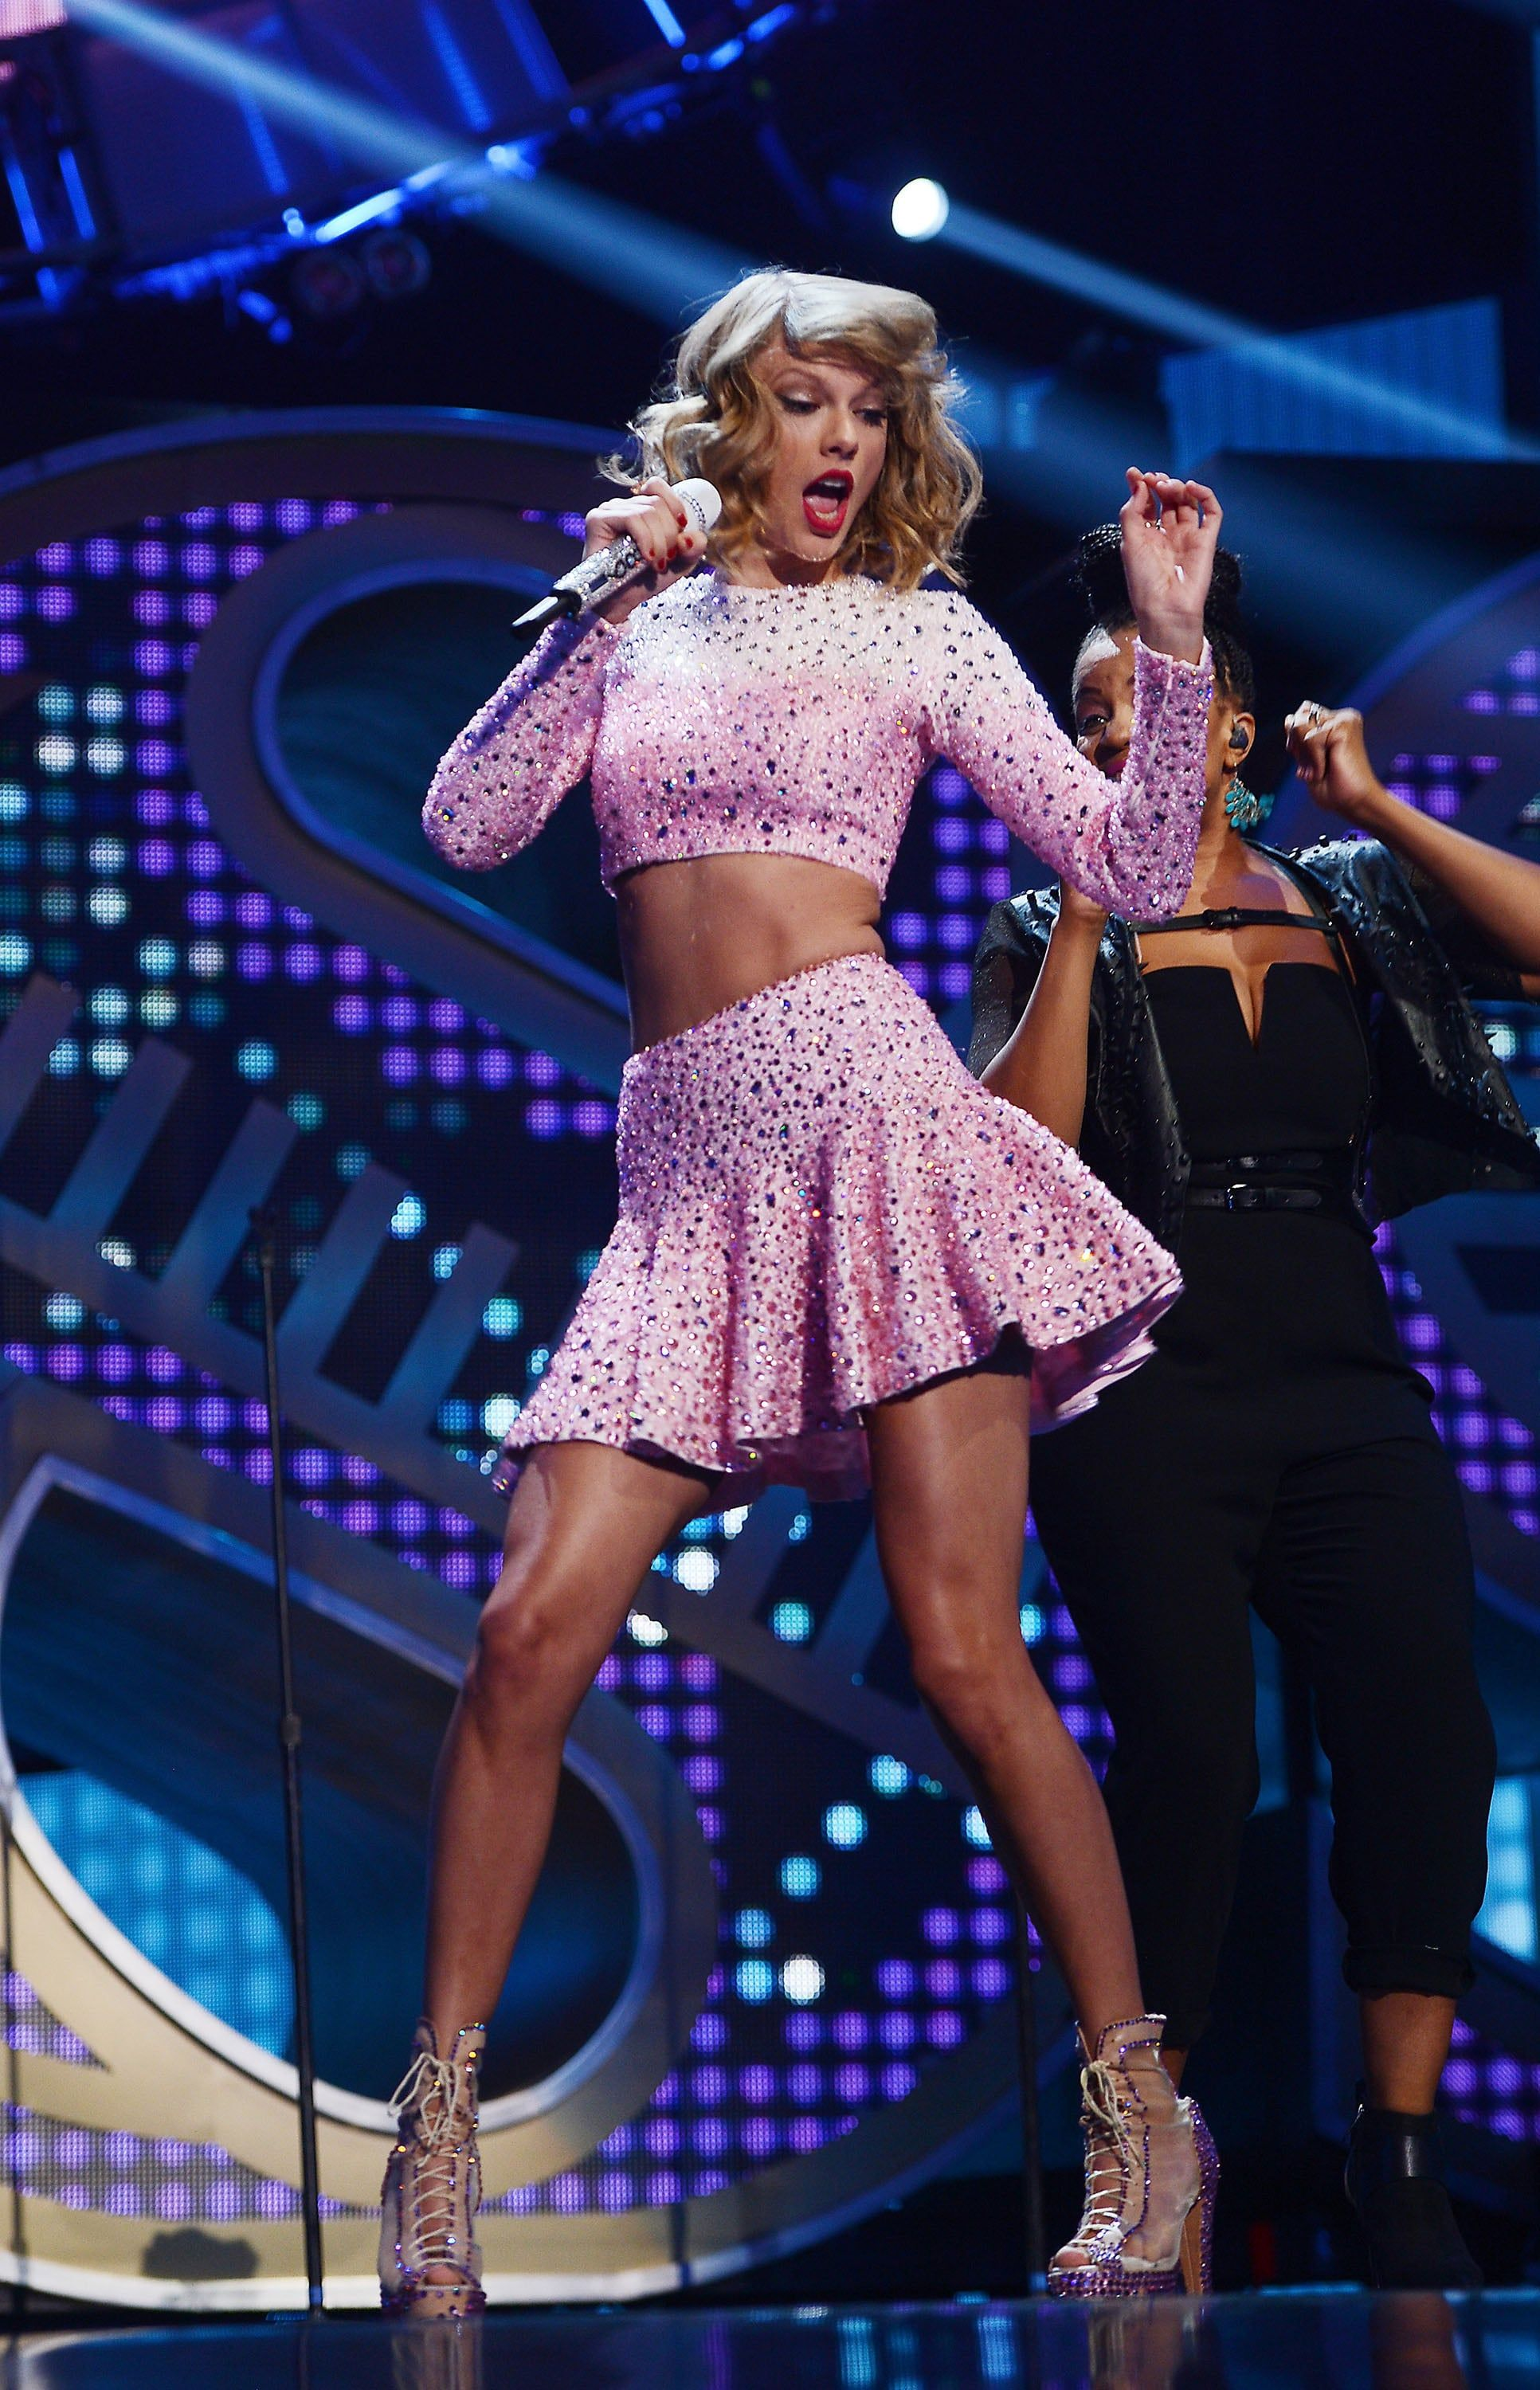 Taylor Swift At The 2014 Iheartradio Music Festival In 2020 Taylor Swift Concert Taylor Swift Hot Taylor Swift 2014